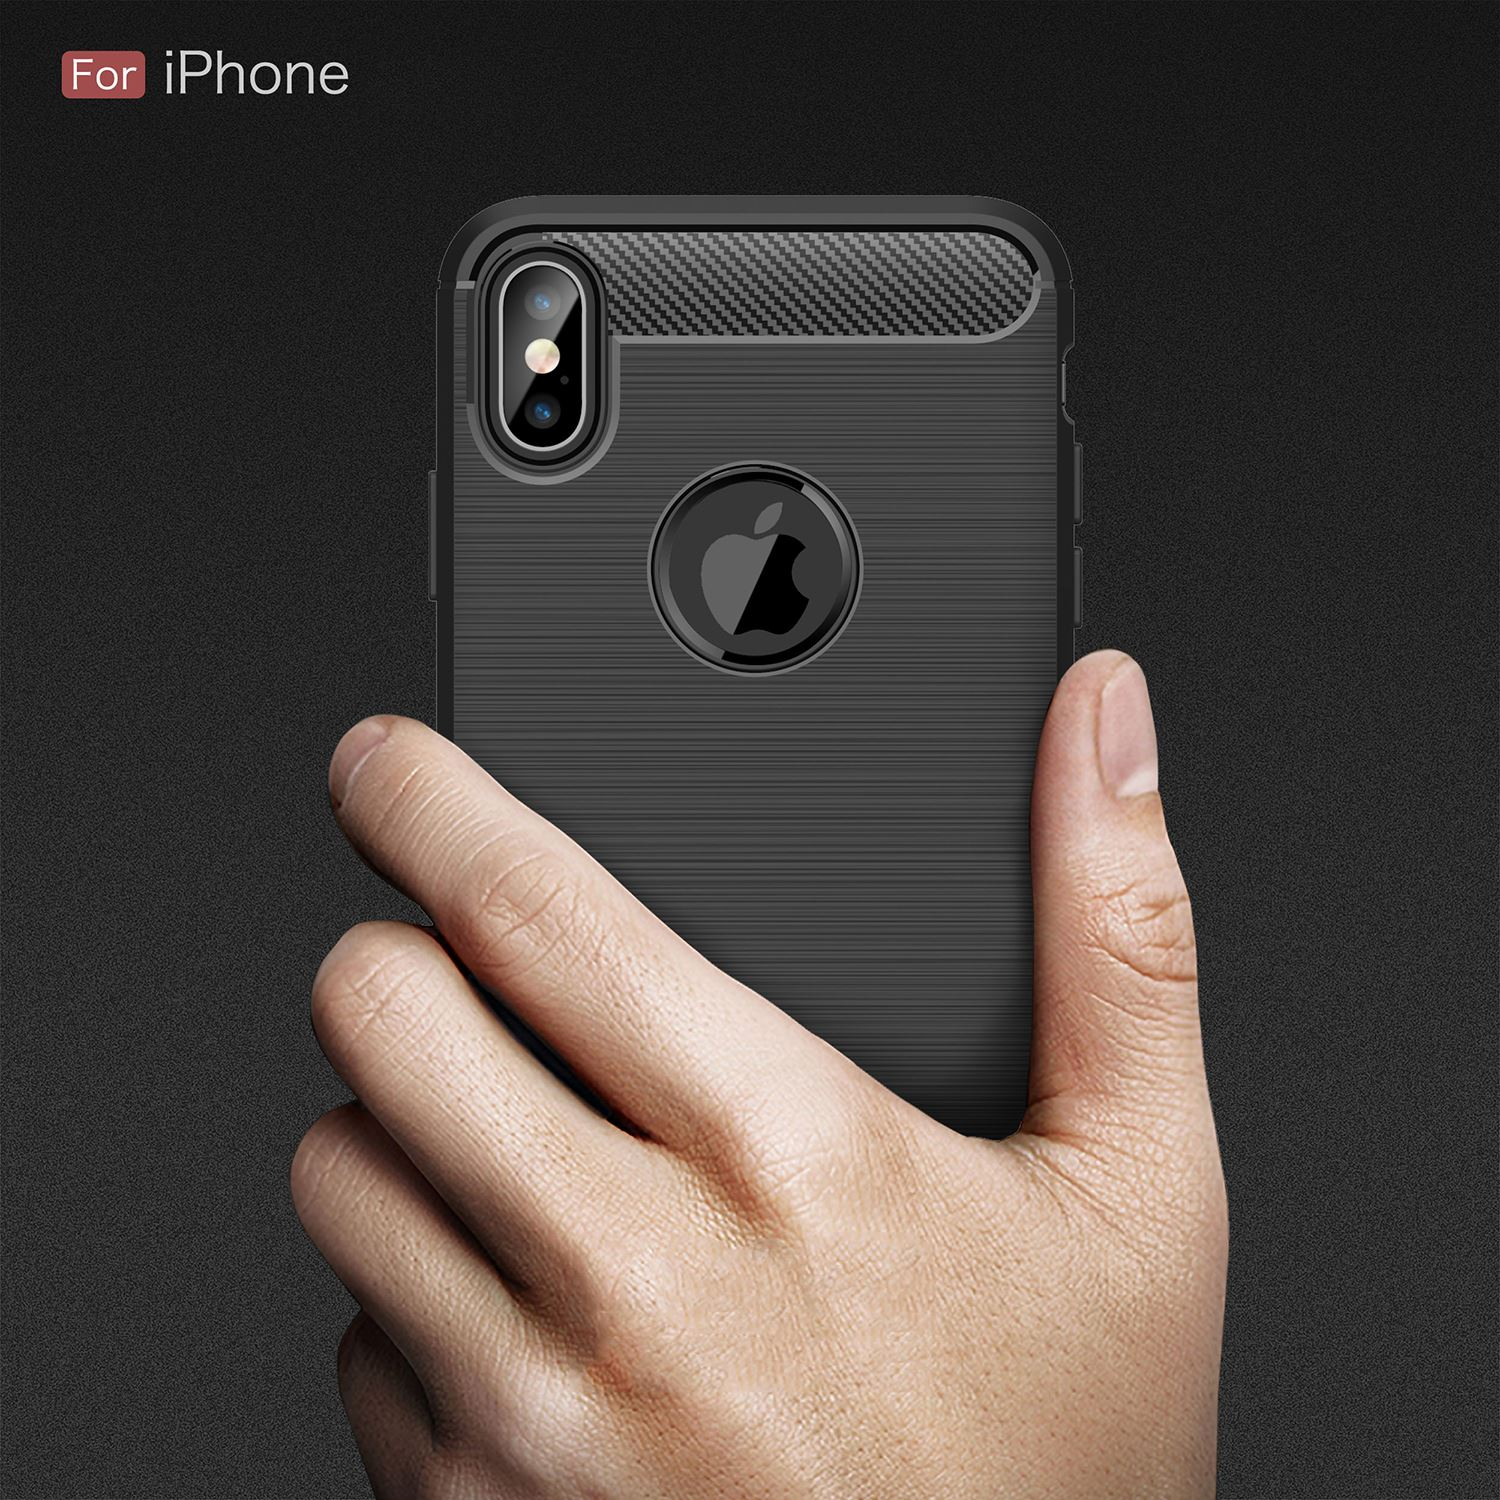 miniature 25 - For Apple iPhone XR Xs Max X 8 7 Plus 6 5 Se 2020 Case Cover New Phone Proof